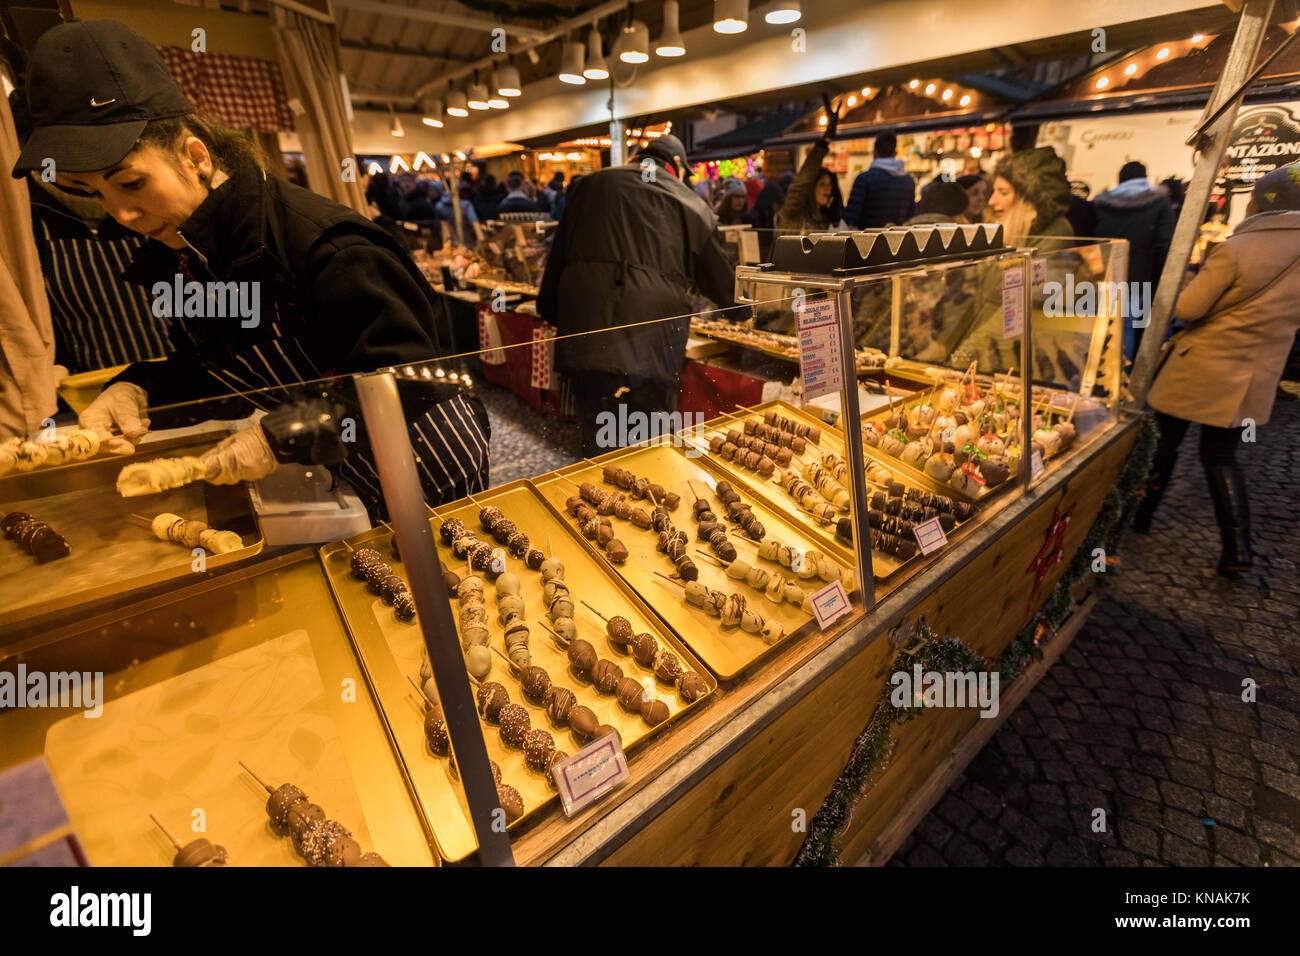 Market stall traders serve food and drink to customers at Manchester Christmas Markets Around The City, Manchester, Stock Photo